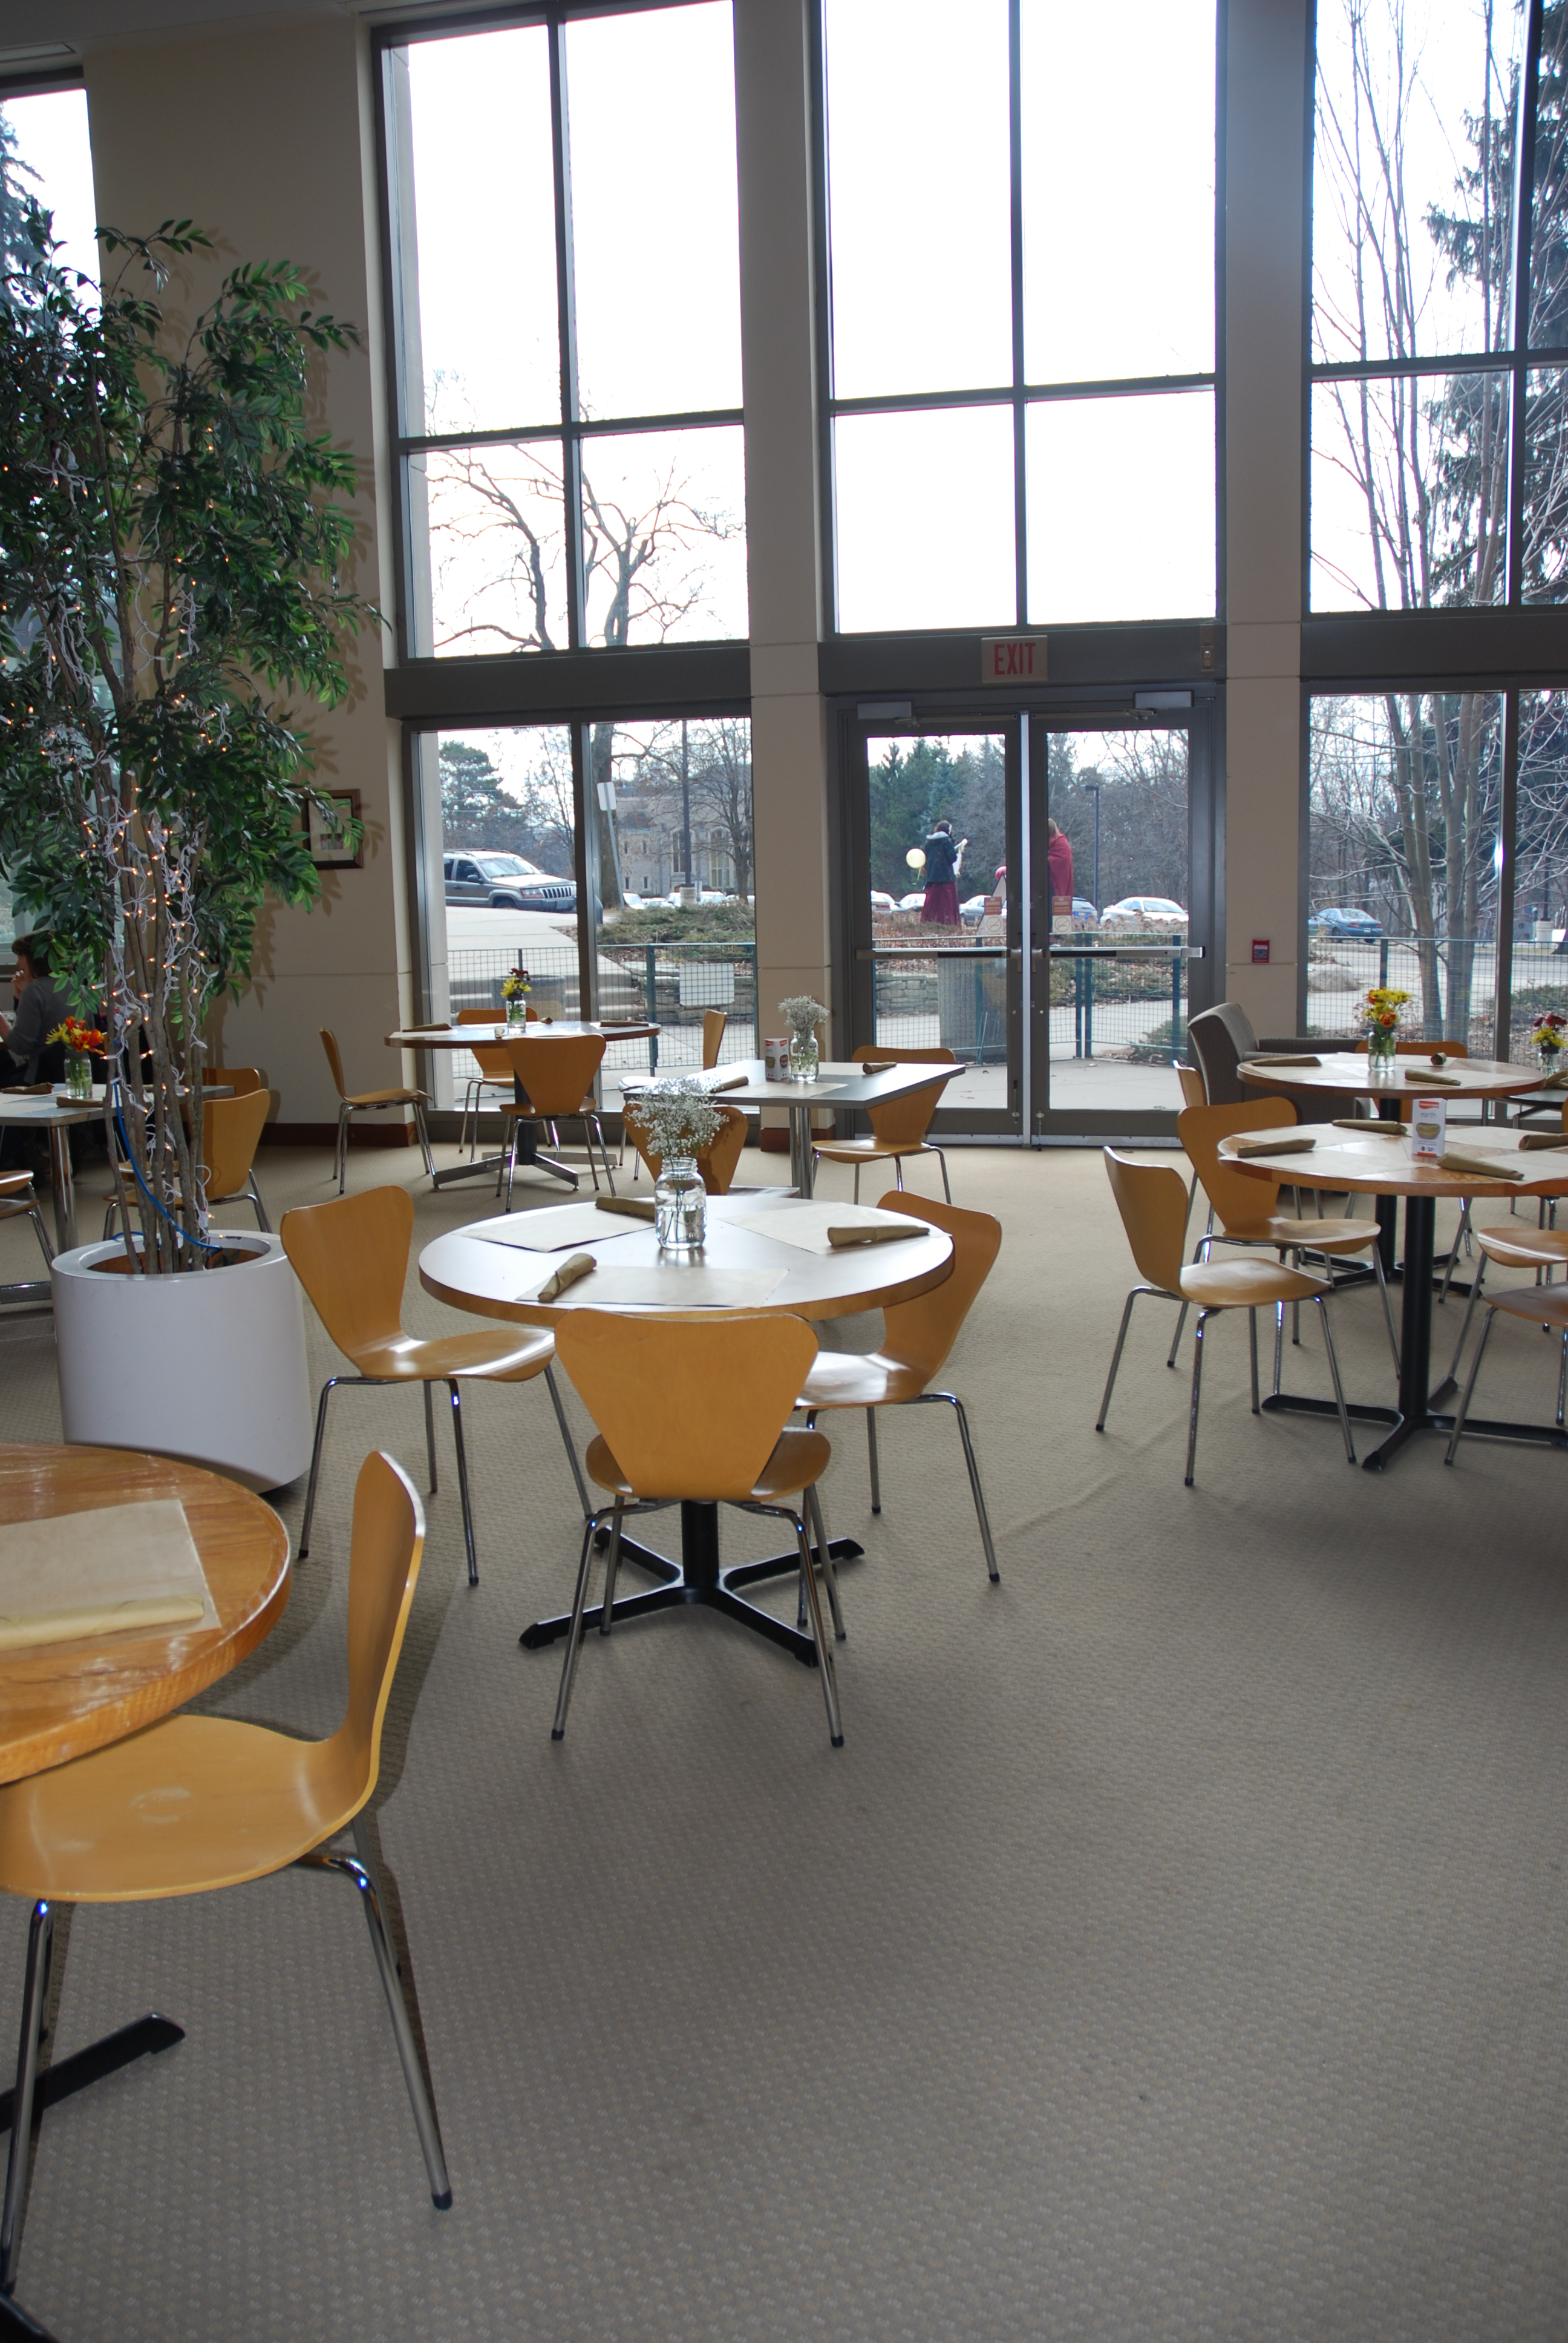 sustainable restaurant furniture. The Dining Room Sustainable Restaurant Furniture